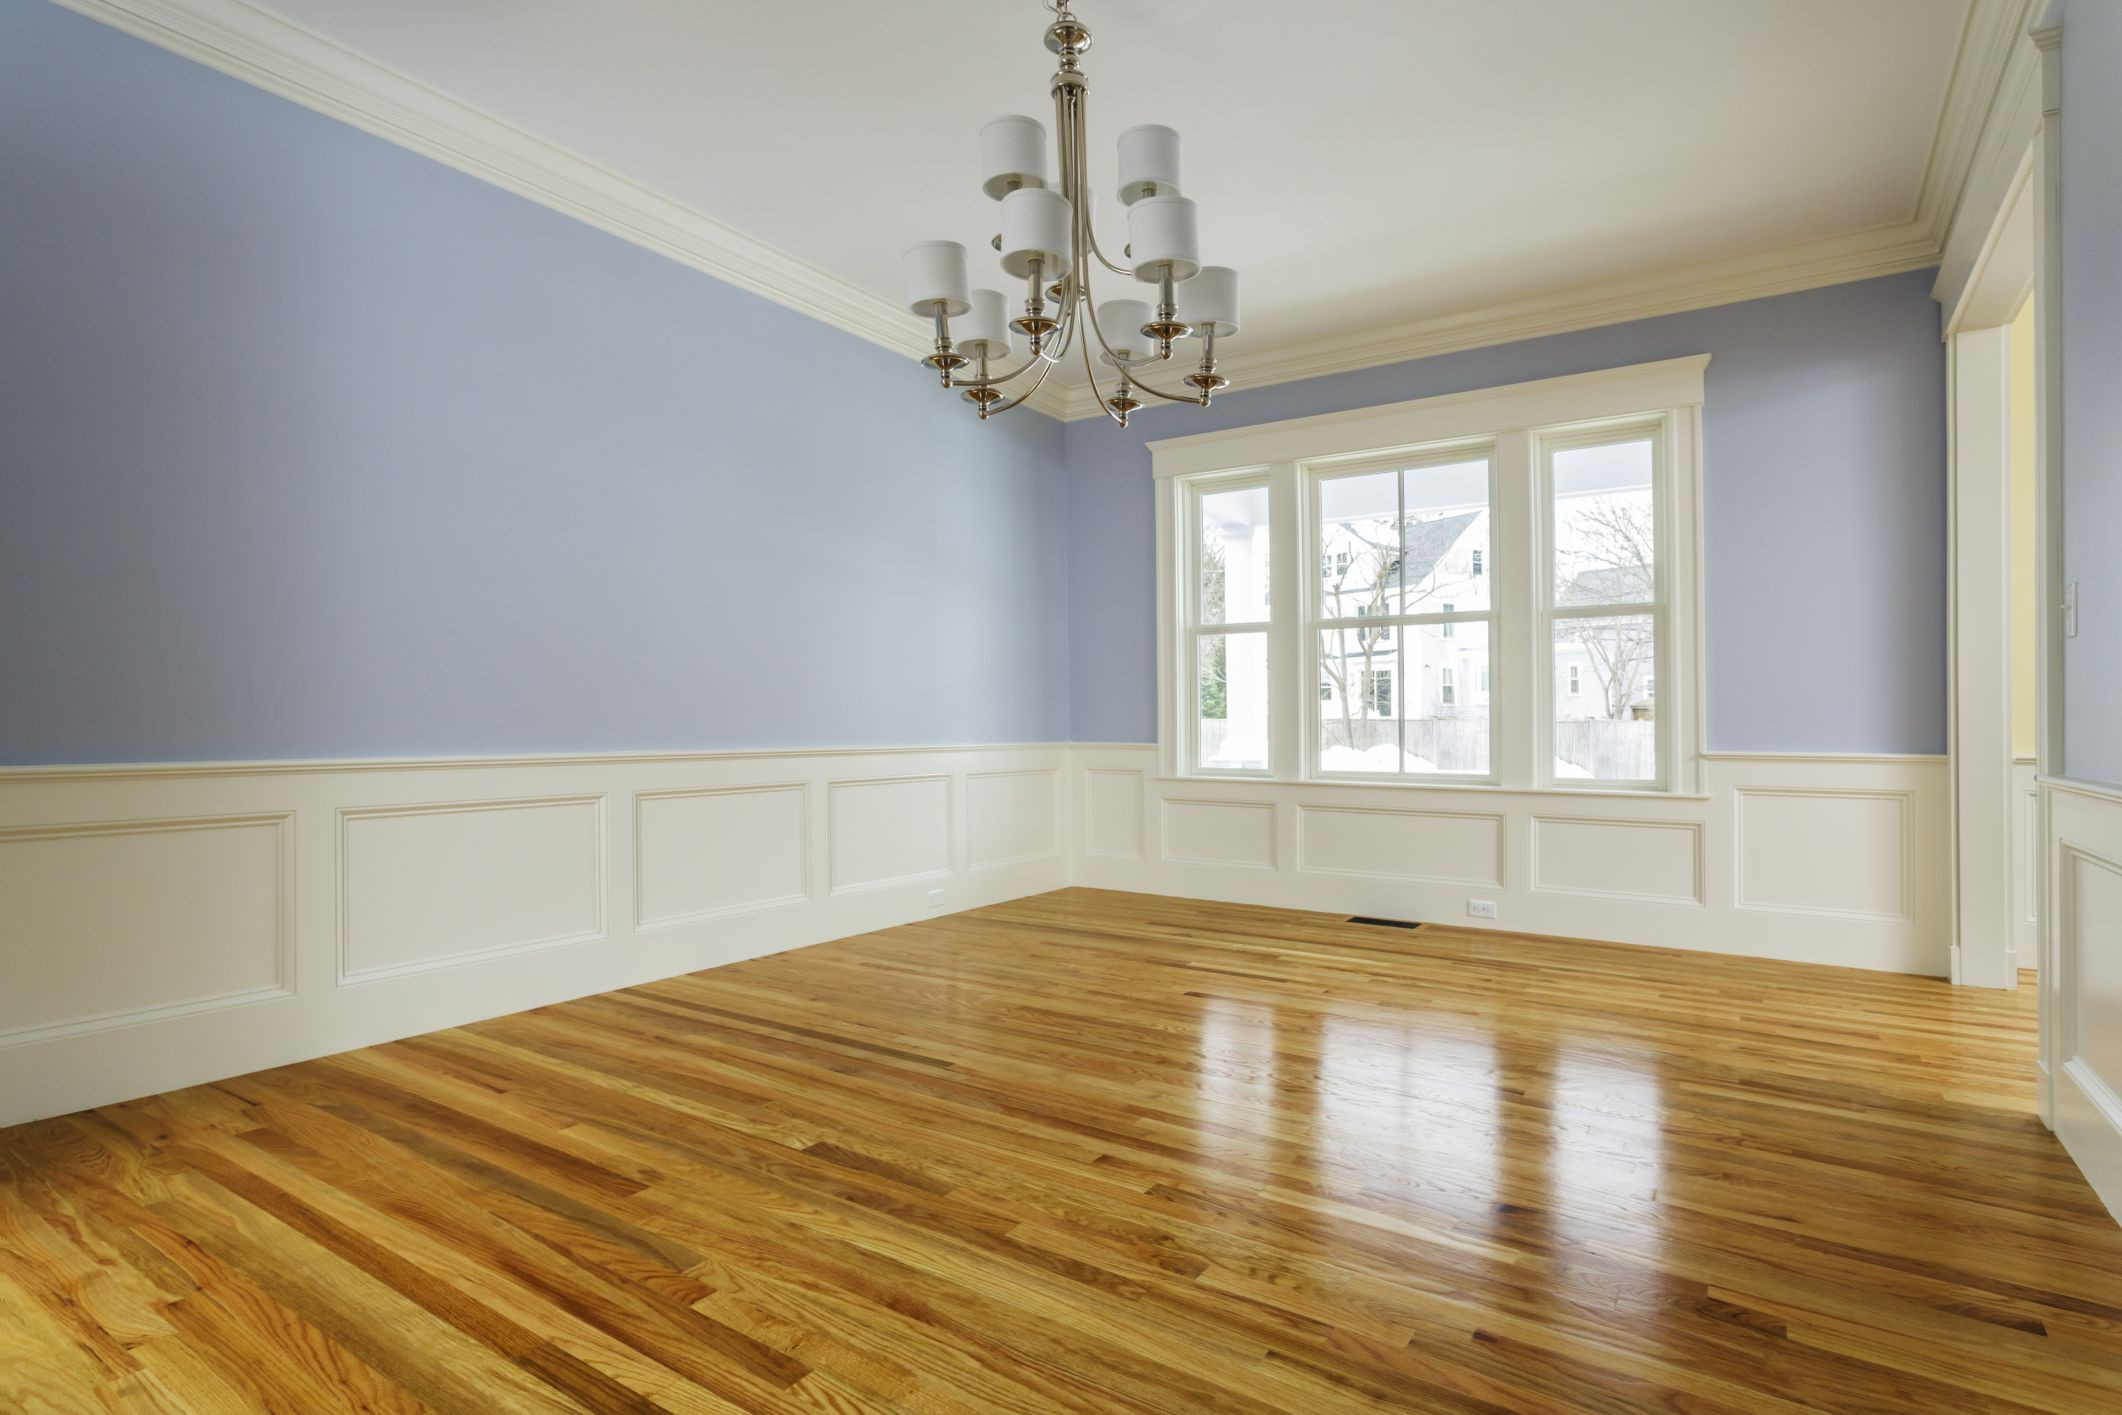 Old Hardwood Floor Ideas Of How to Make Hardwood Floors Shiny Intended for 168686572 56a4e87c3df78cf7728544a2